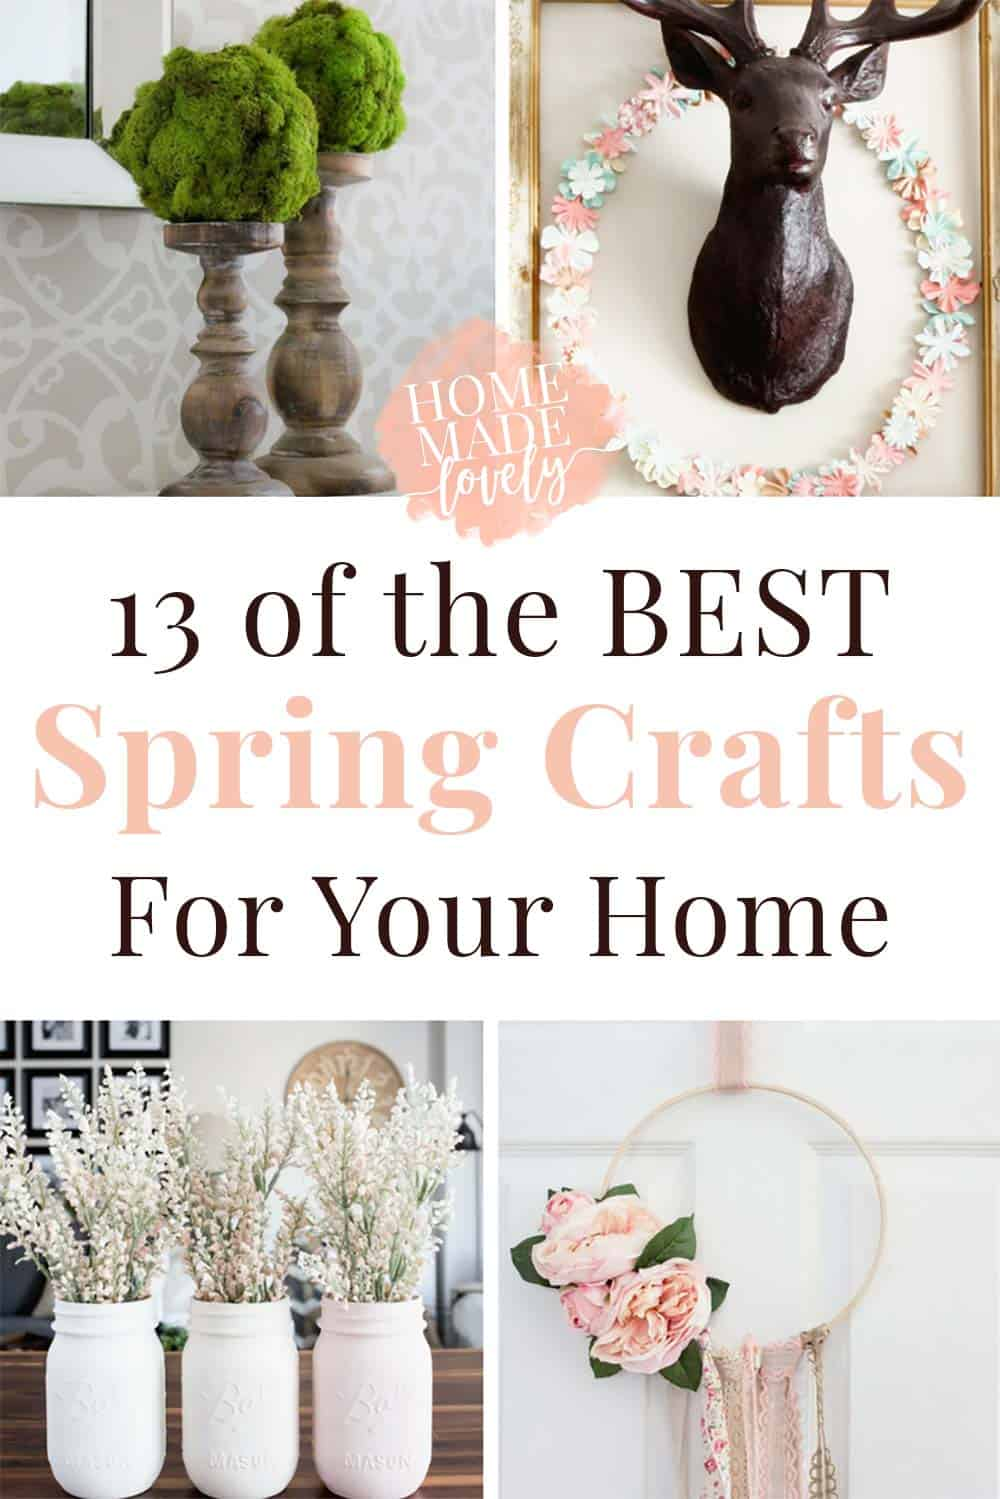 Bring in the new spring season with 13 of the best spring crafts for your home. No ugly crafts here - all of these were made to look beautiful!